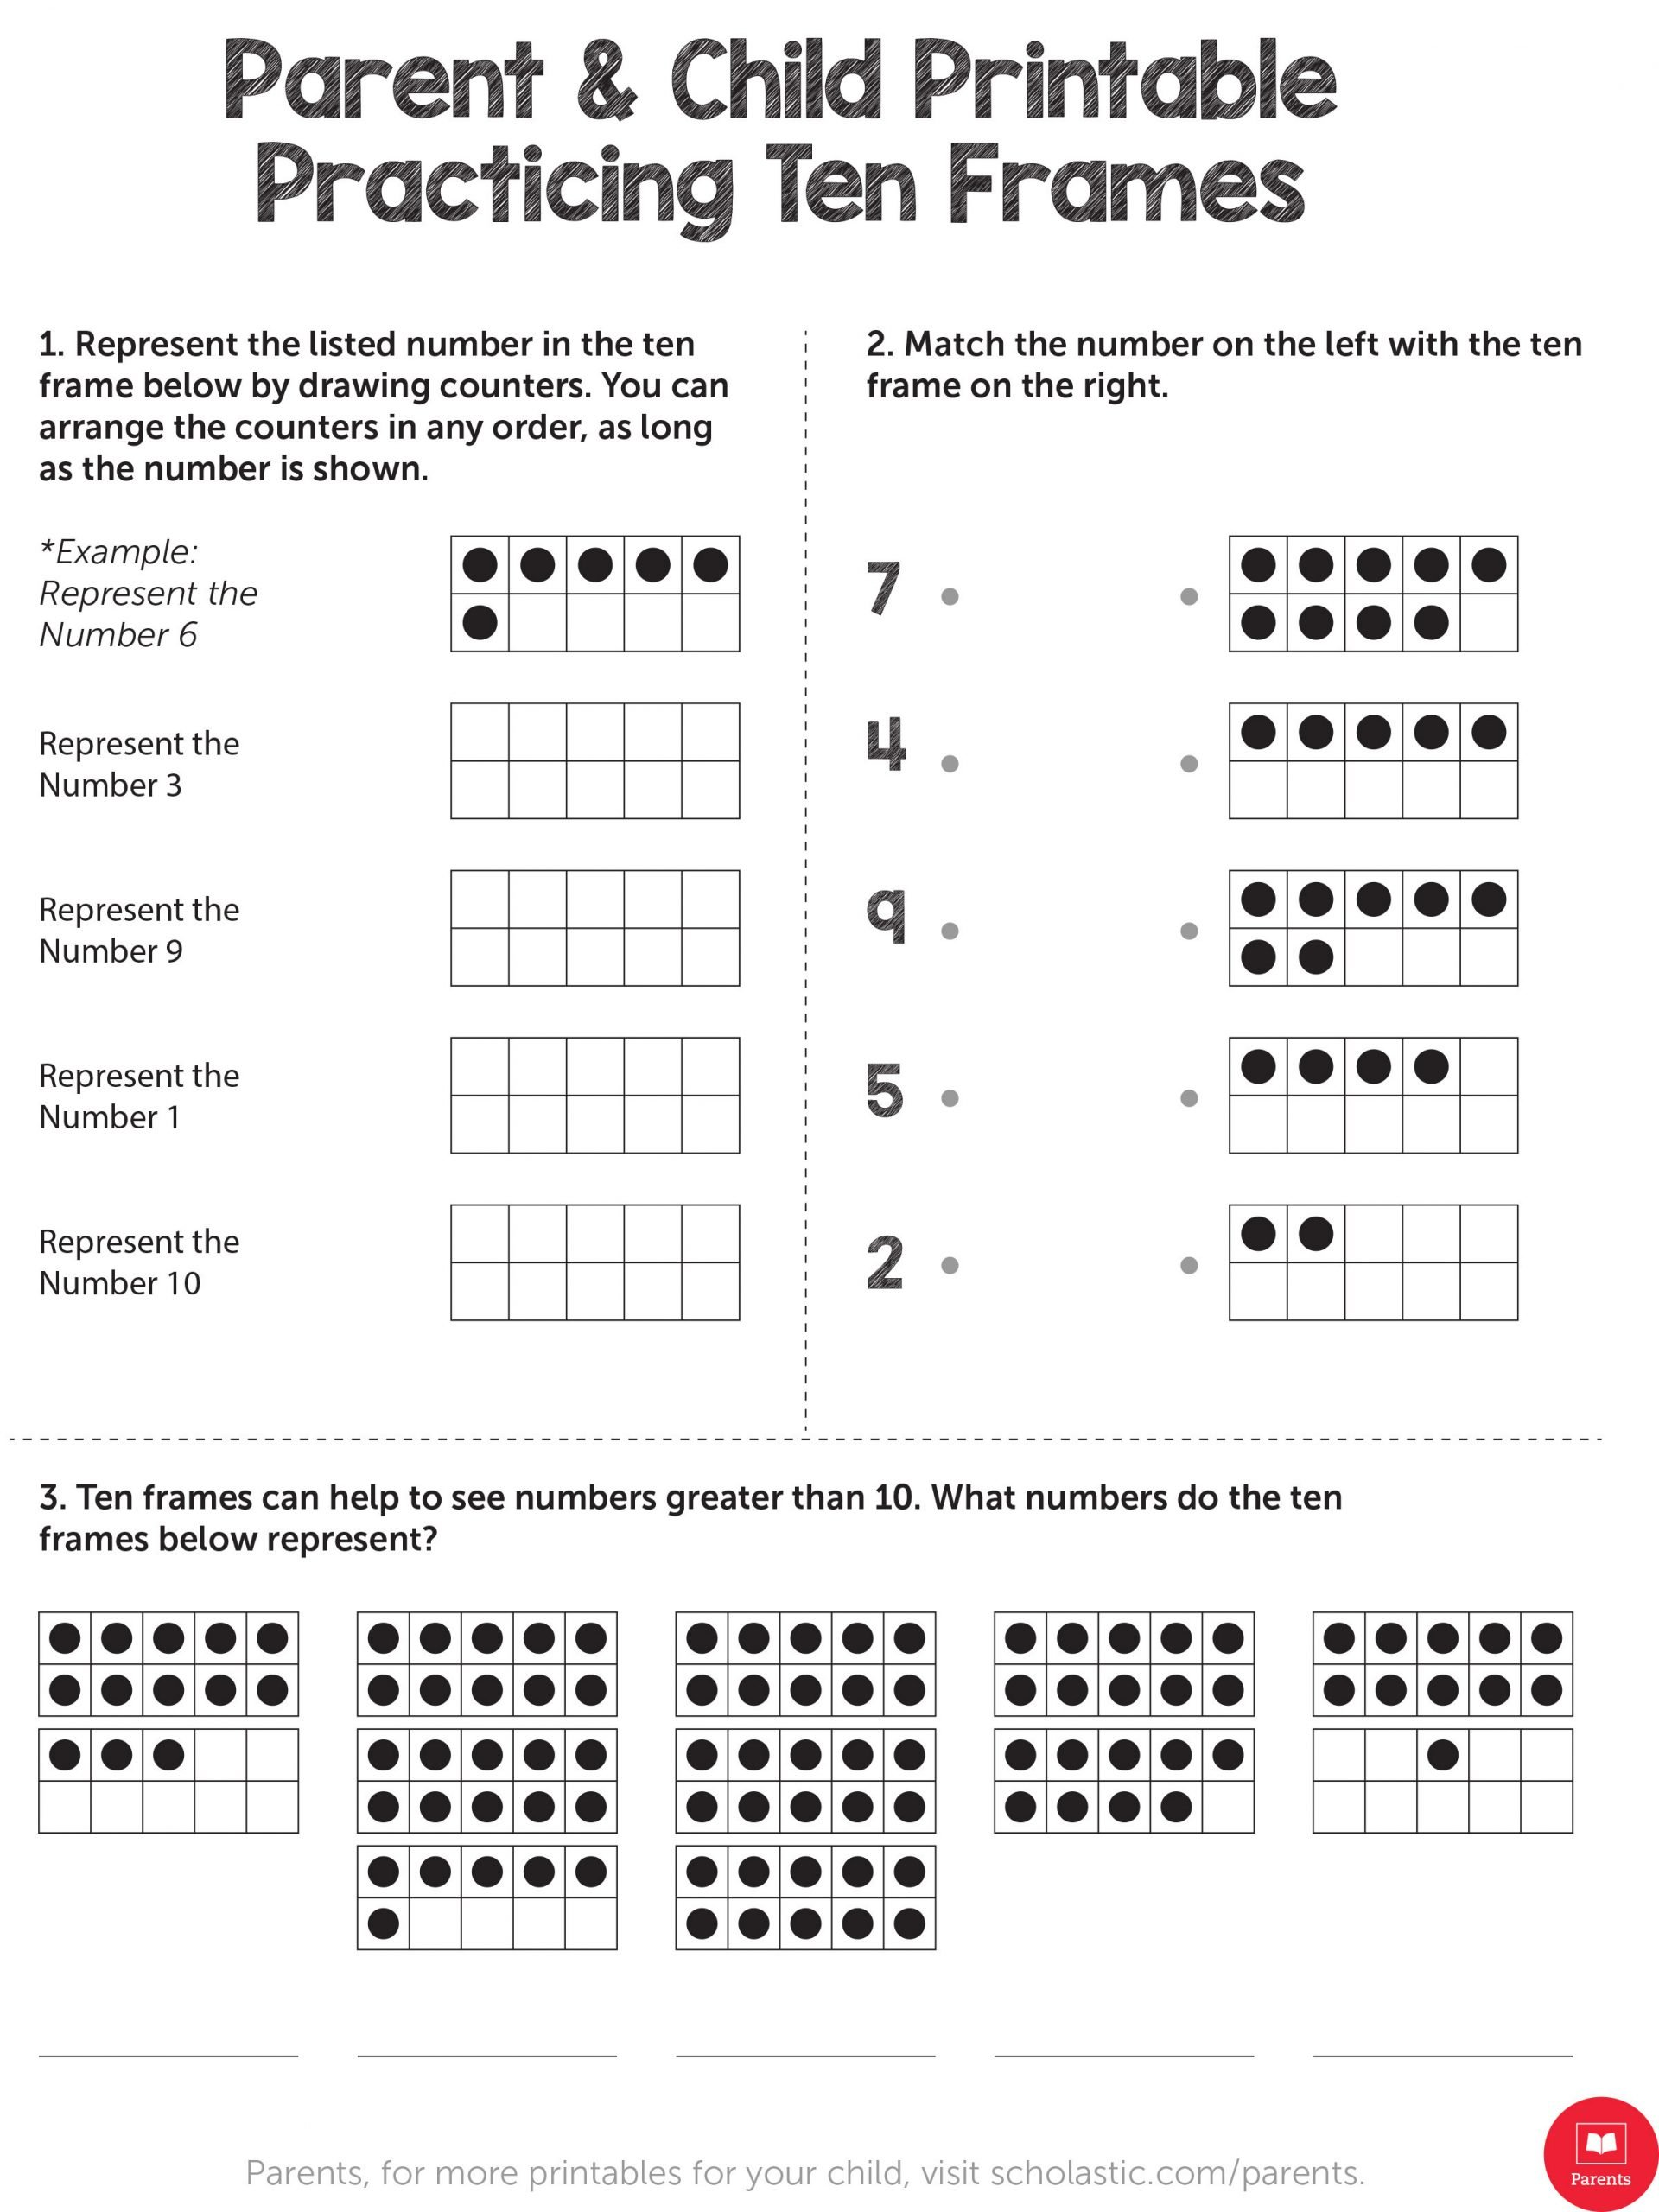 Ten Frame Addition Worksheets Learn Your Child S Math with This Ten Frame Printable